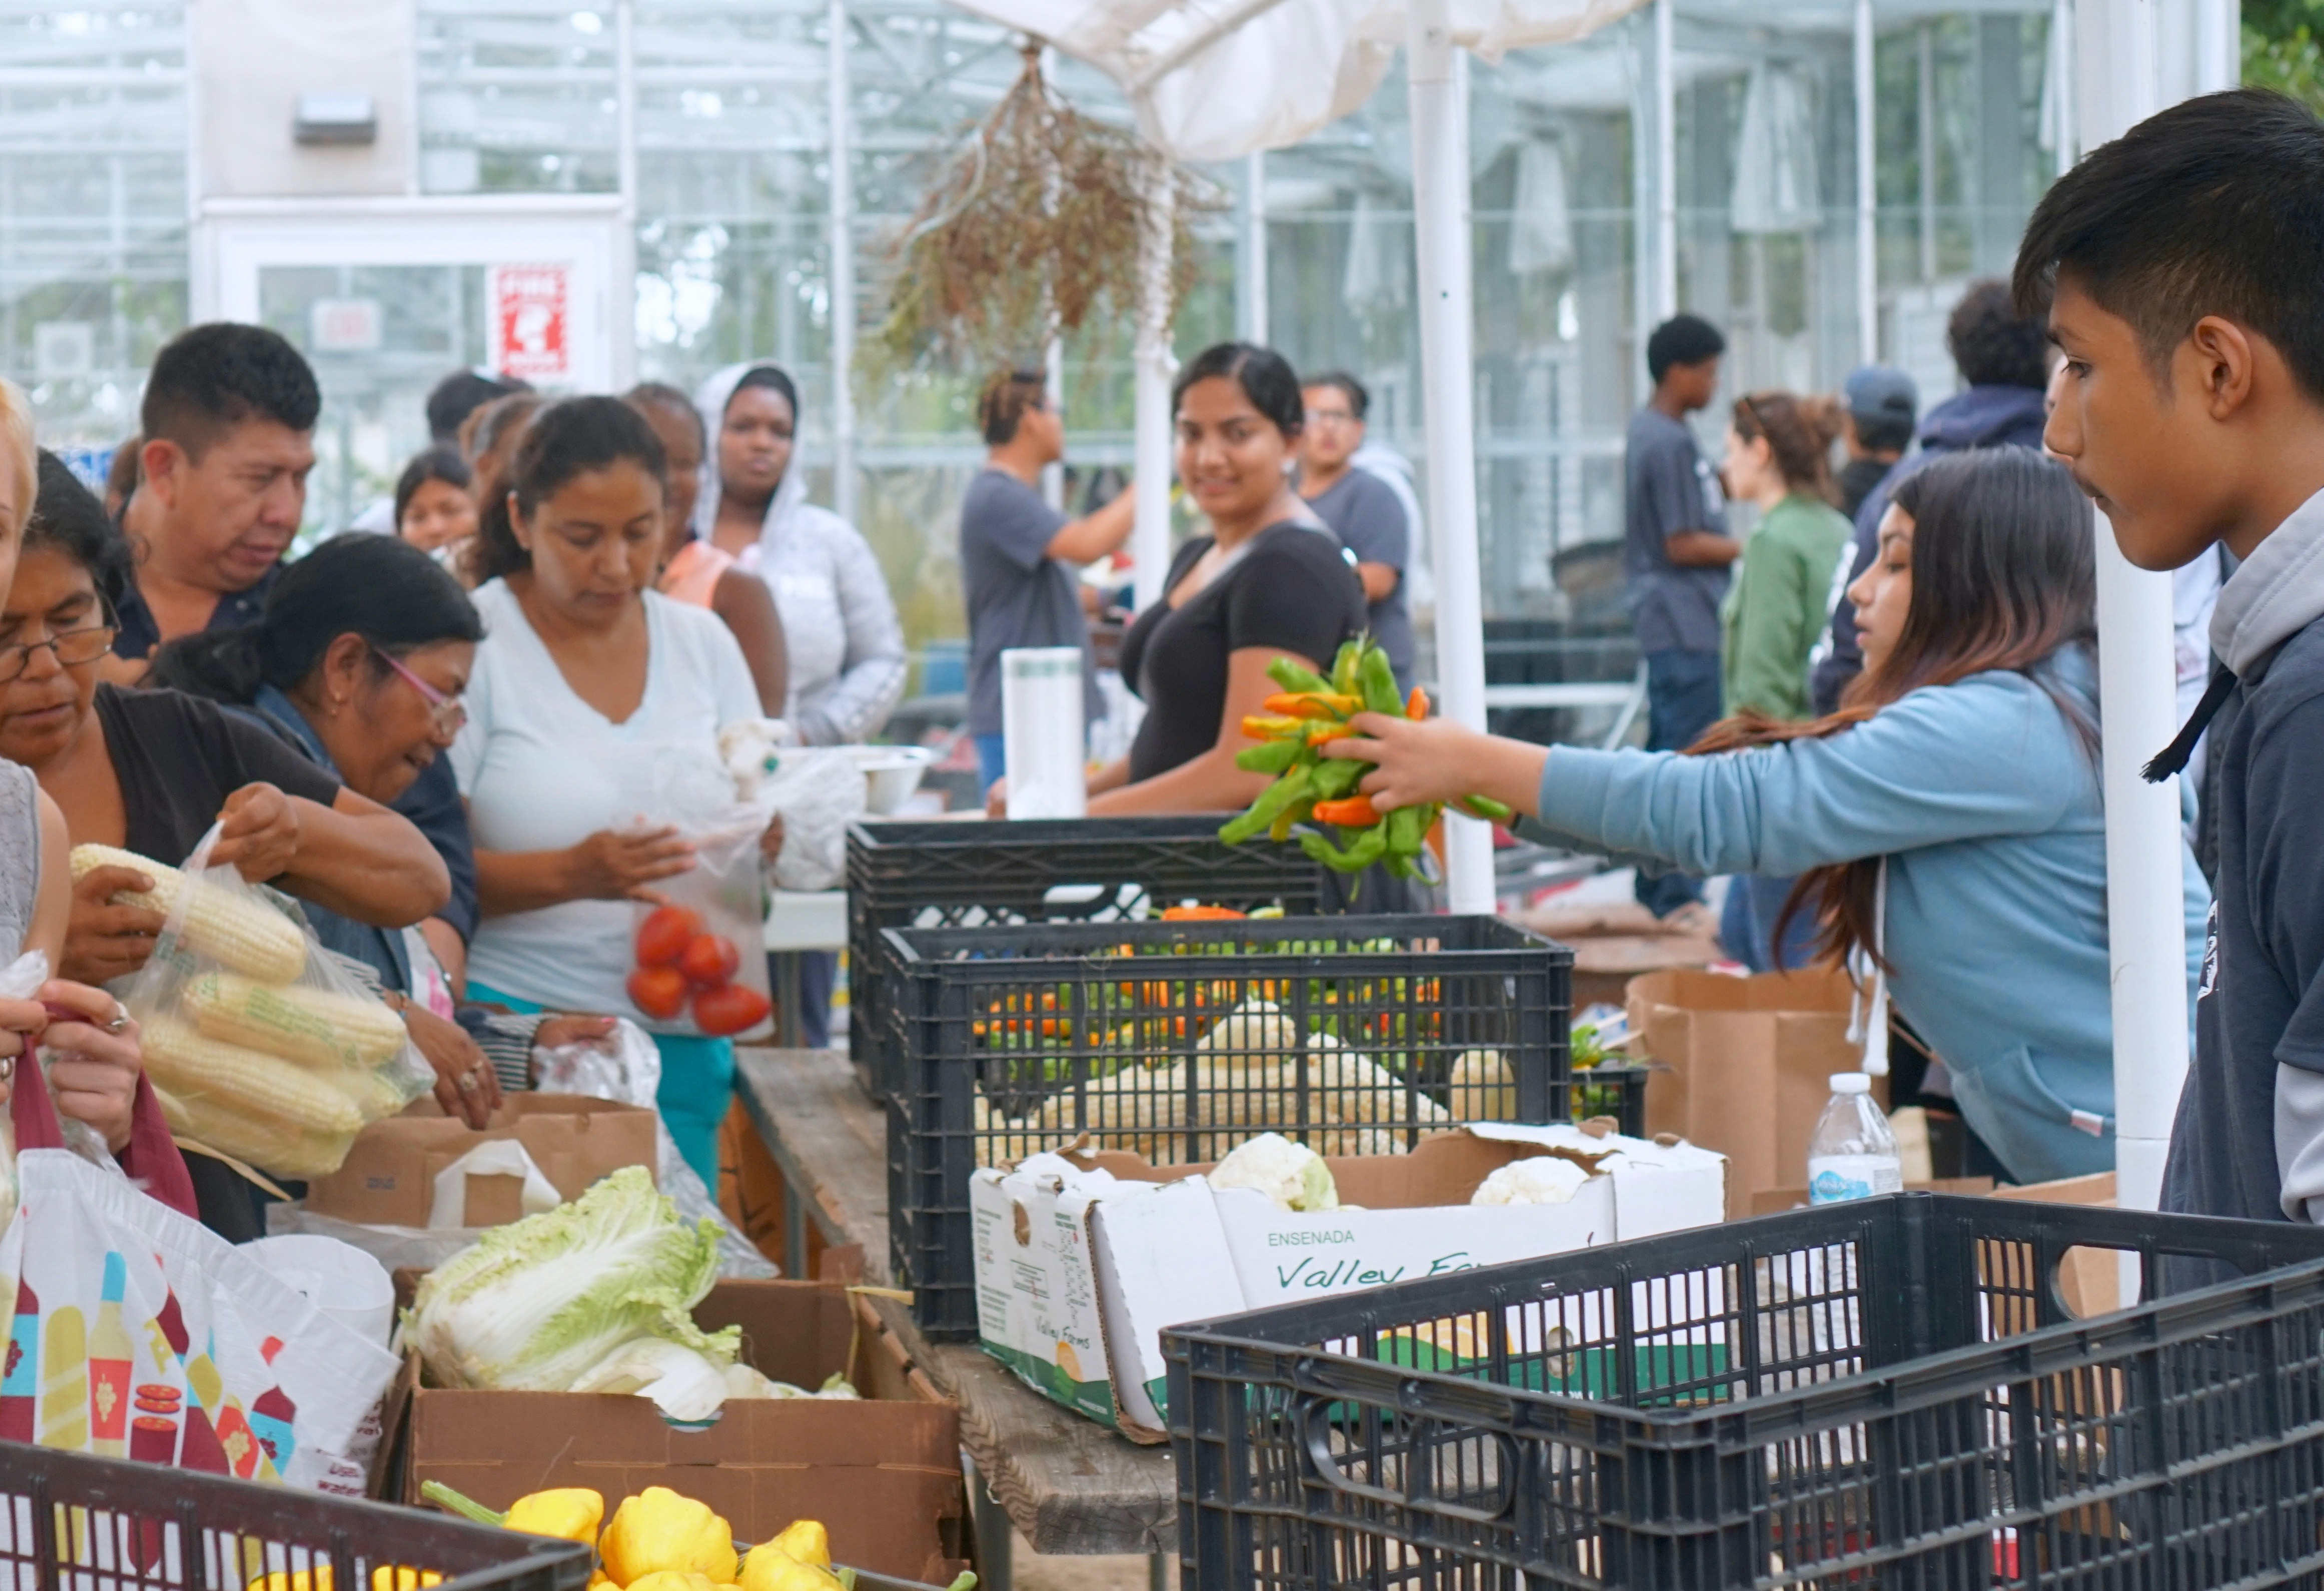 UMMA Clinic, the LA Neighborhood Land Trust, and Food Forward come together along with volunteers from Fremont High School at the Fremont Community Garden to offer free fresh fruit and vegetables to the community every Wednesday afternoon from 3-5pm.